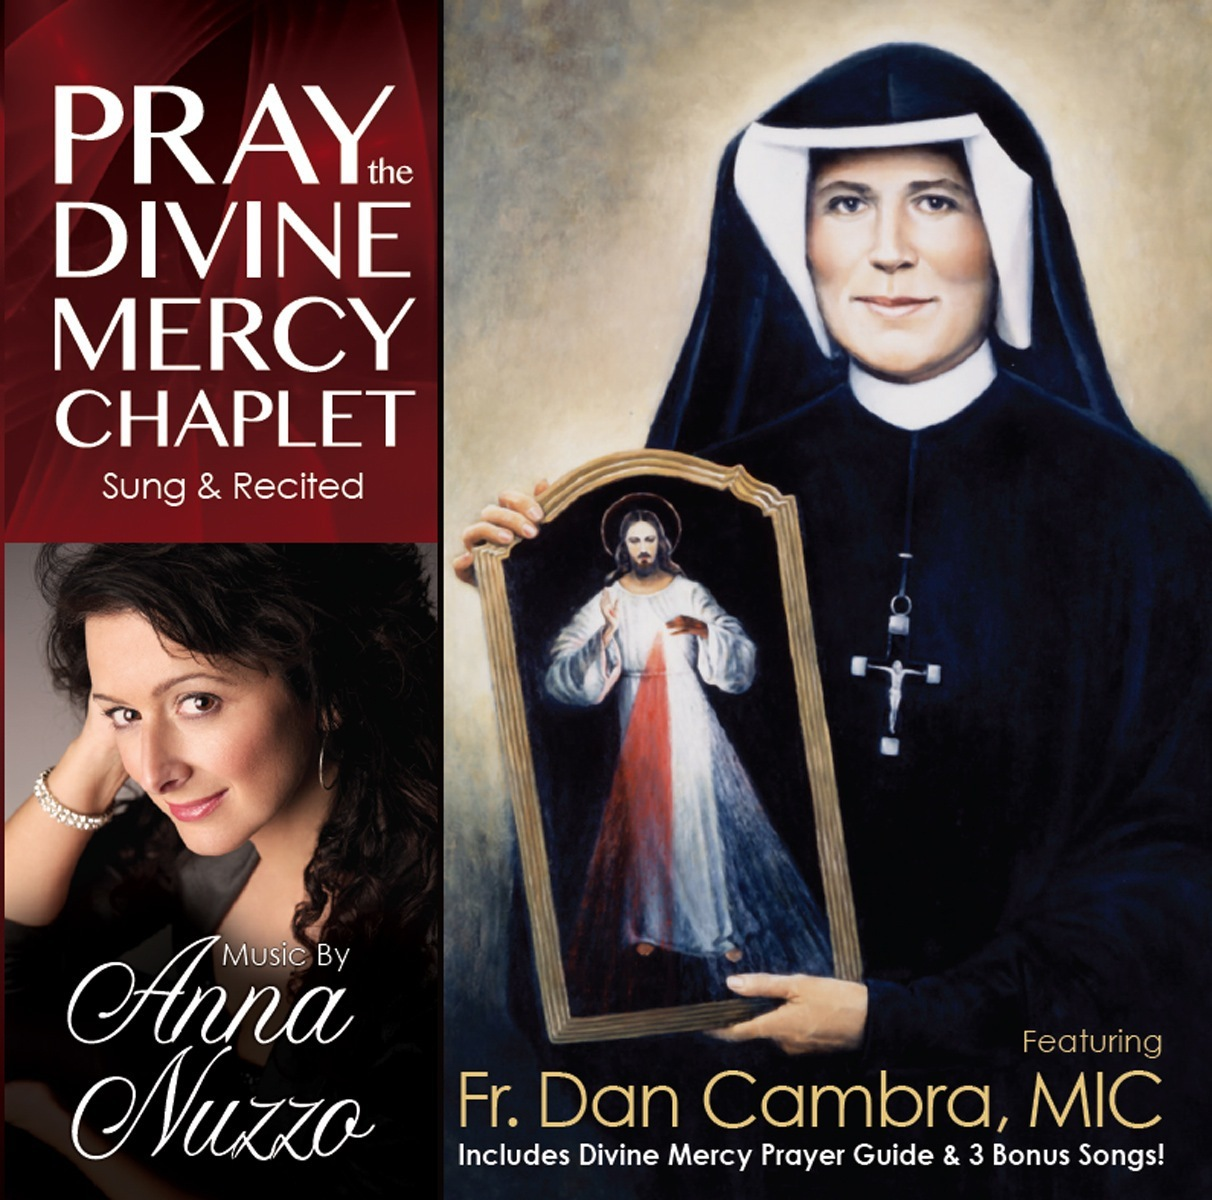 Pray the divine mercy chaplet featuring fr. dan cambra mic   anna nuzzo